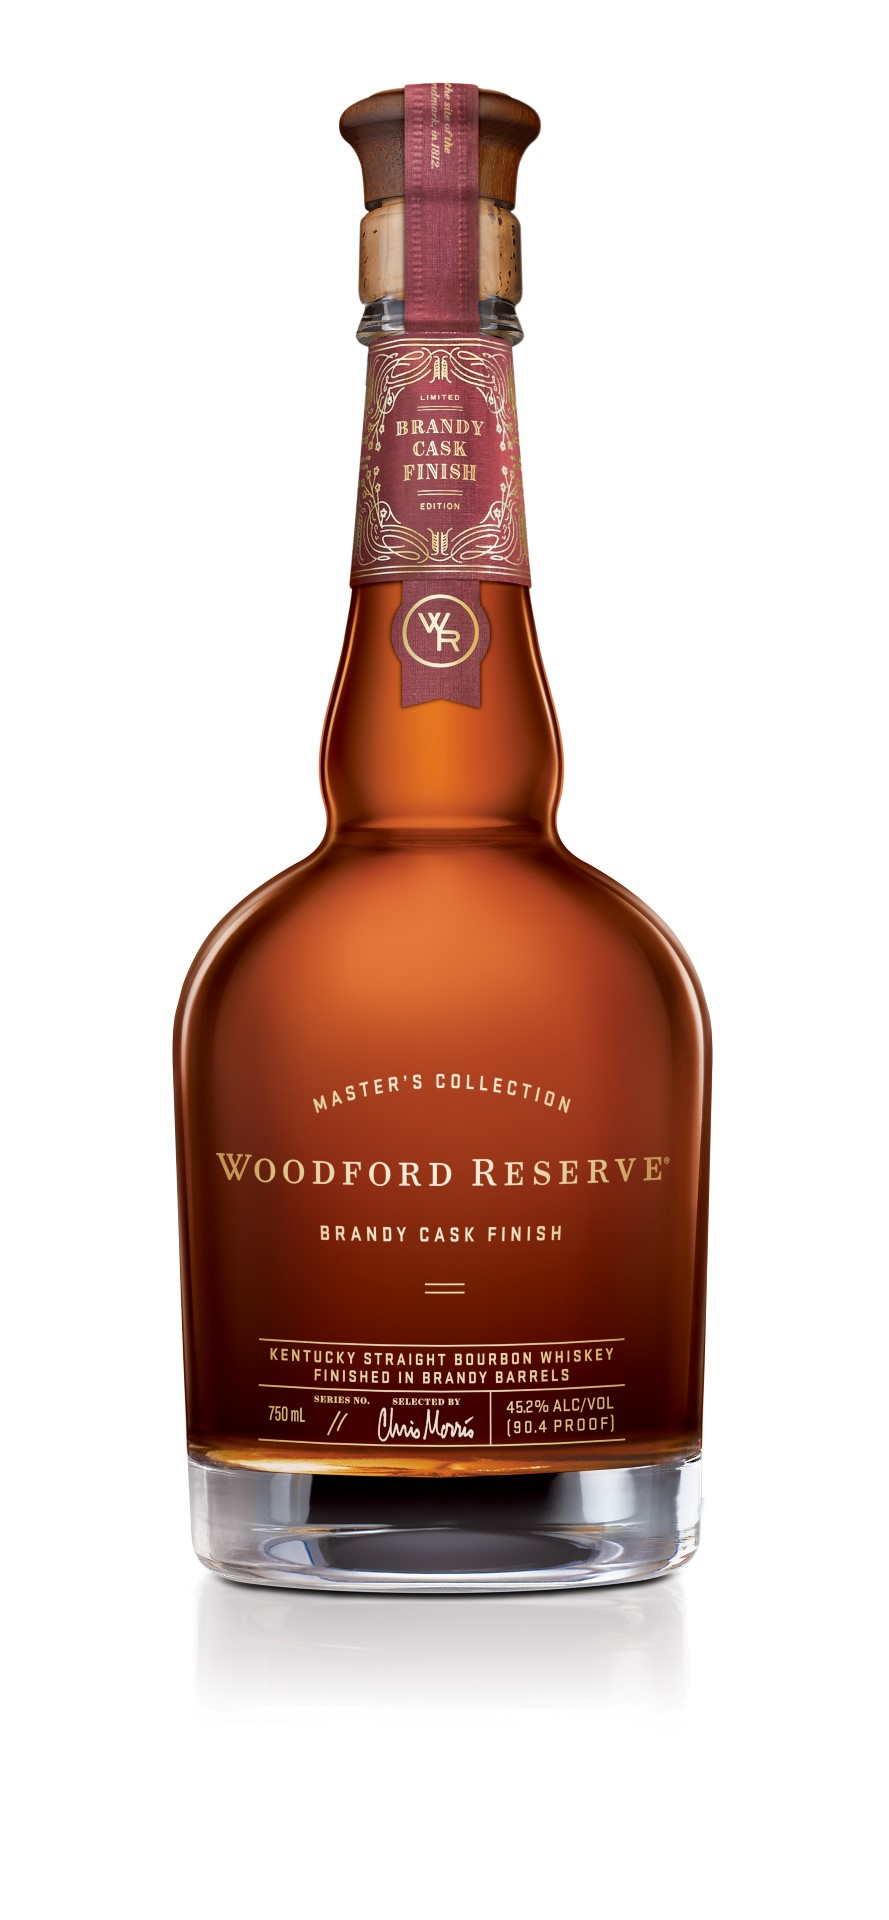 Review: Woodford Reserve Master's Collection Brandy Cask Finish